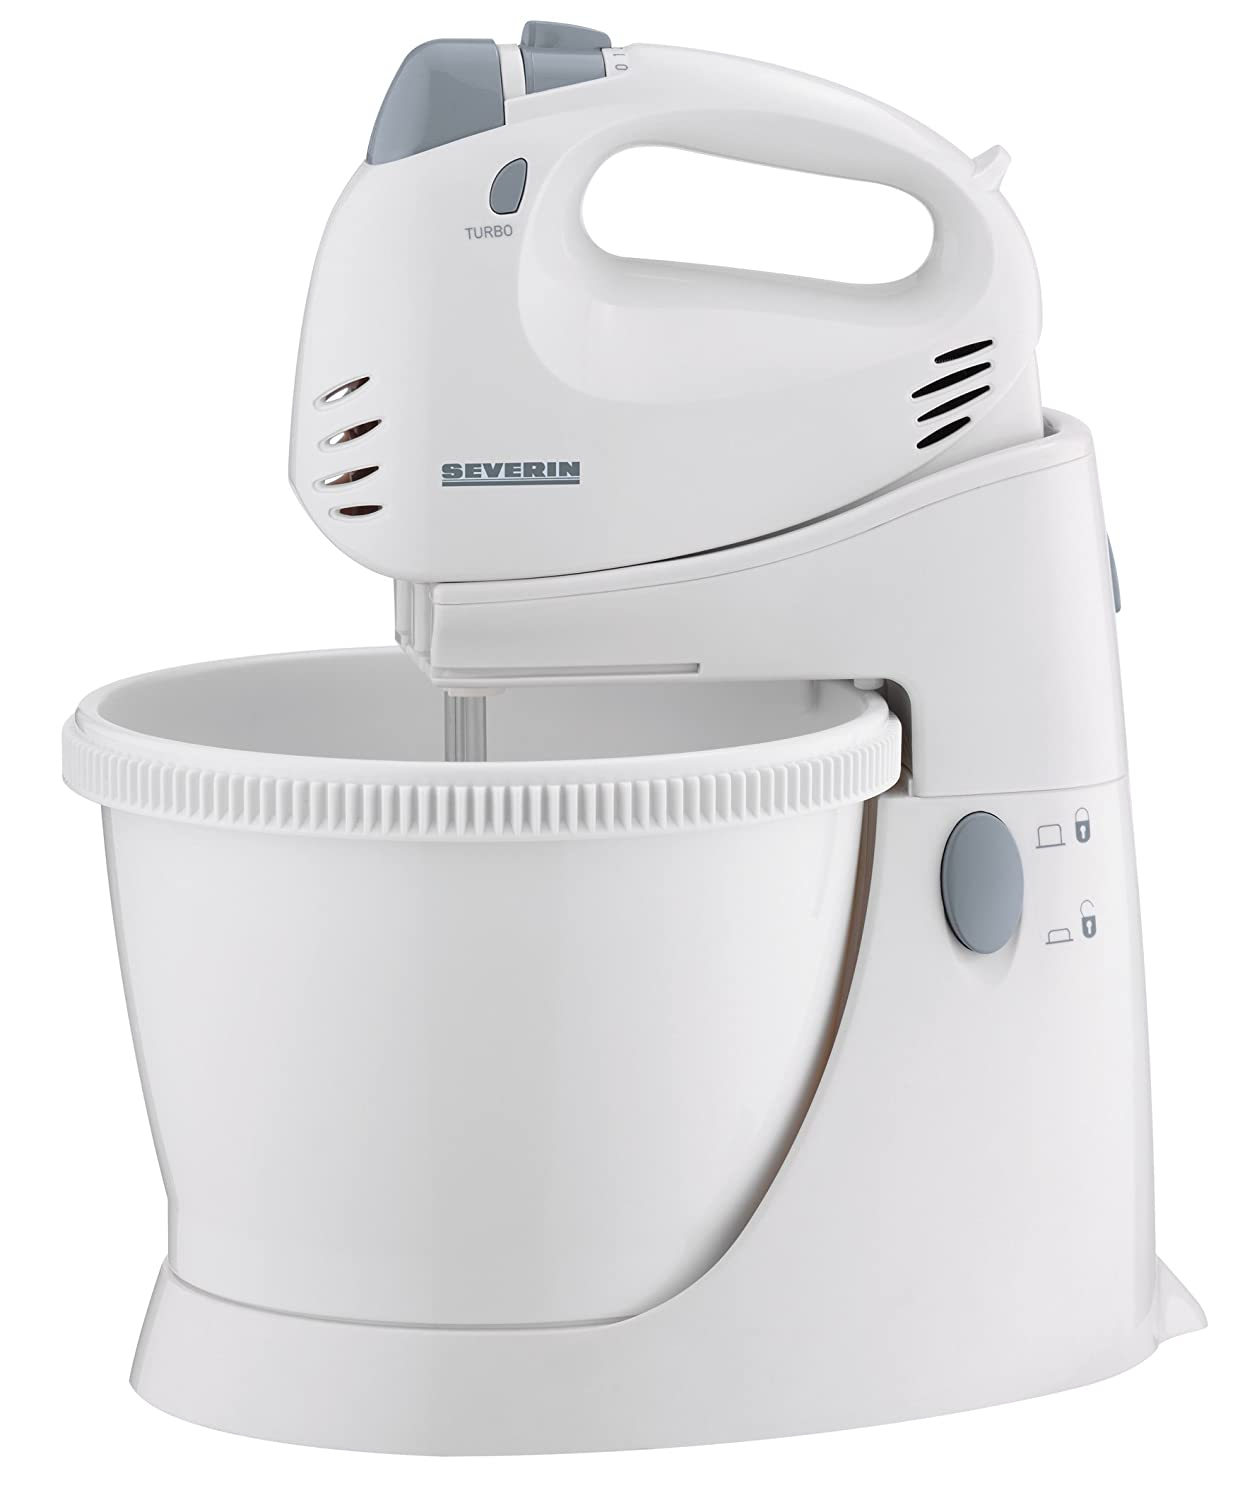 Severin Food Mixer HM 3817, Plástico, Blanco, Azul, 250 W ...